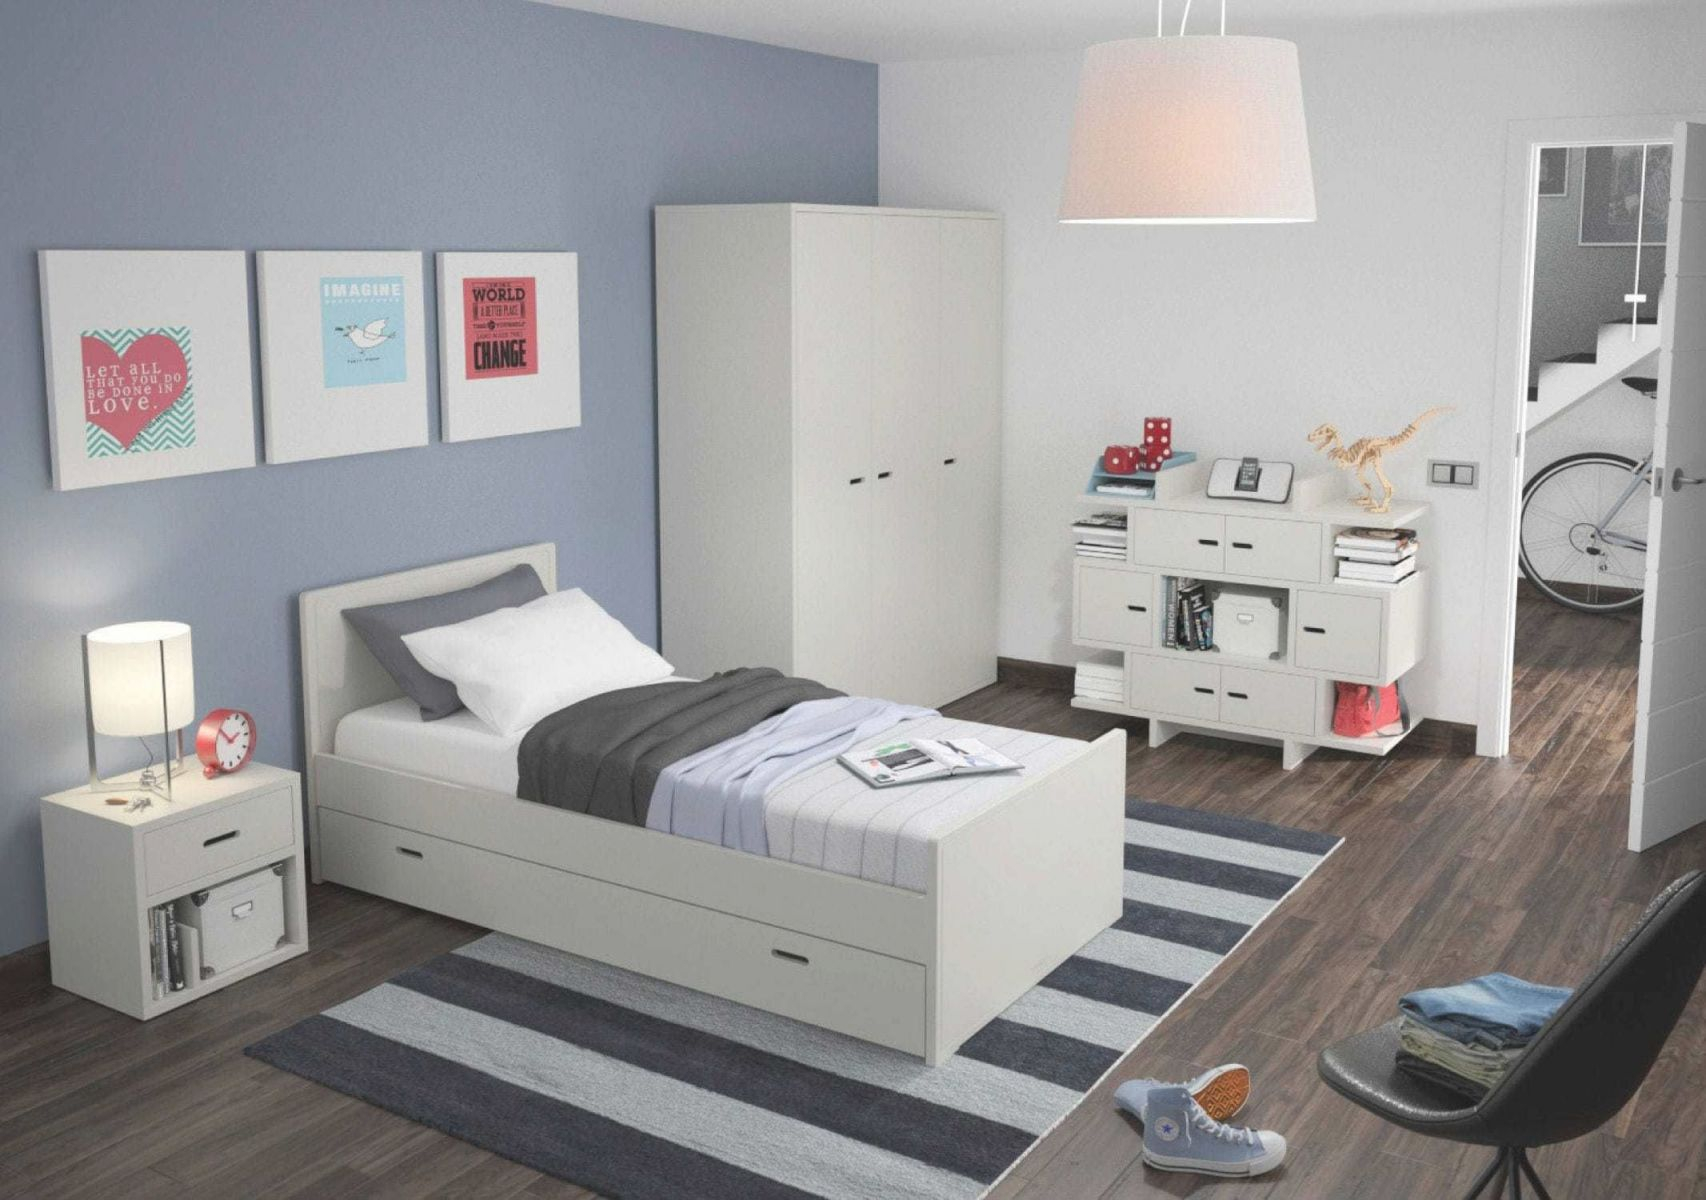 fresh childrens bedroom furniture sets awesome decors on Cheap Childrens Bedroom Furniture Sets id=92122